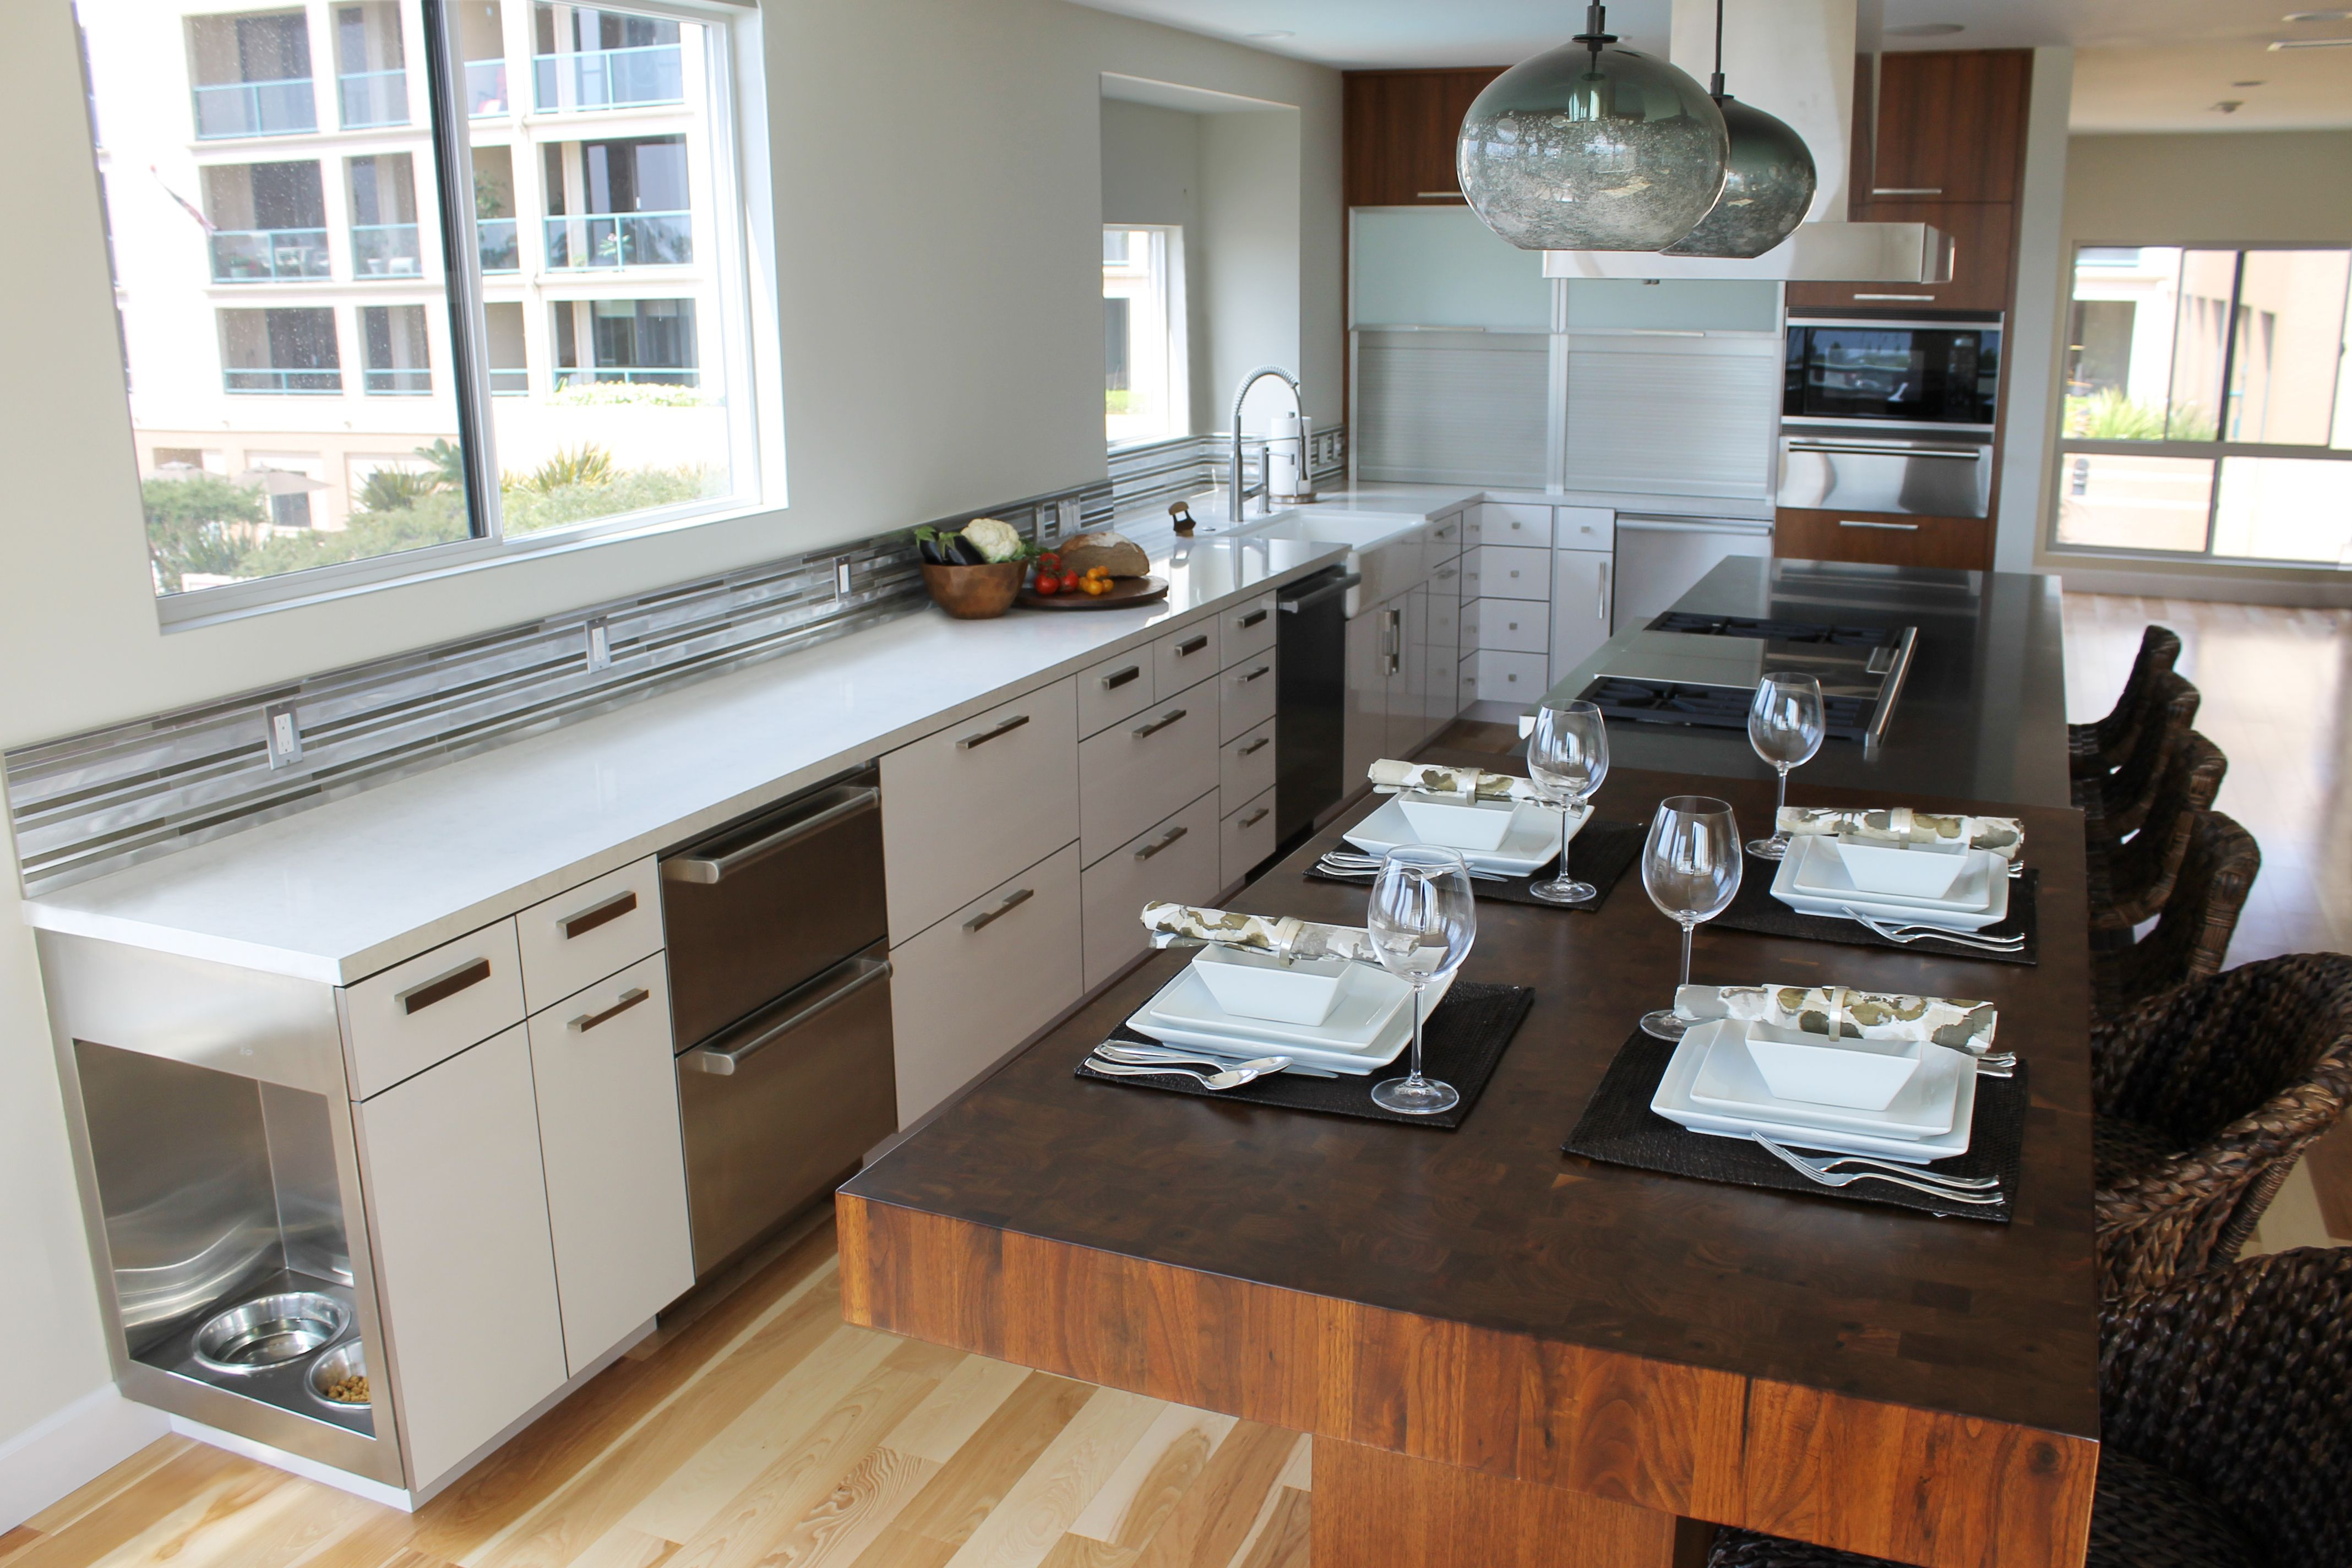 Magnificent The Modern Seaside Kitchen The Modern Seaside Kitchen Download Free Architecture Designs Embacsunscenecom